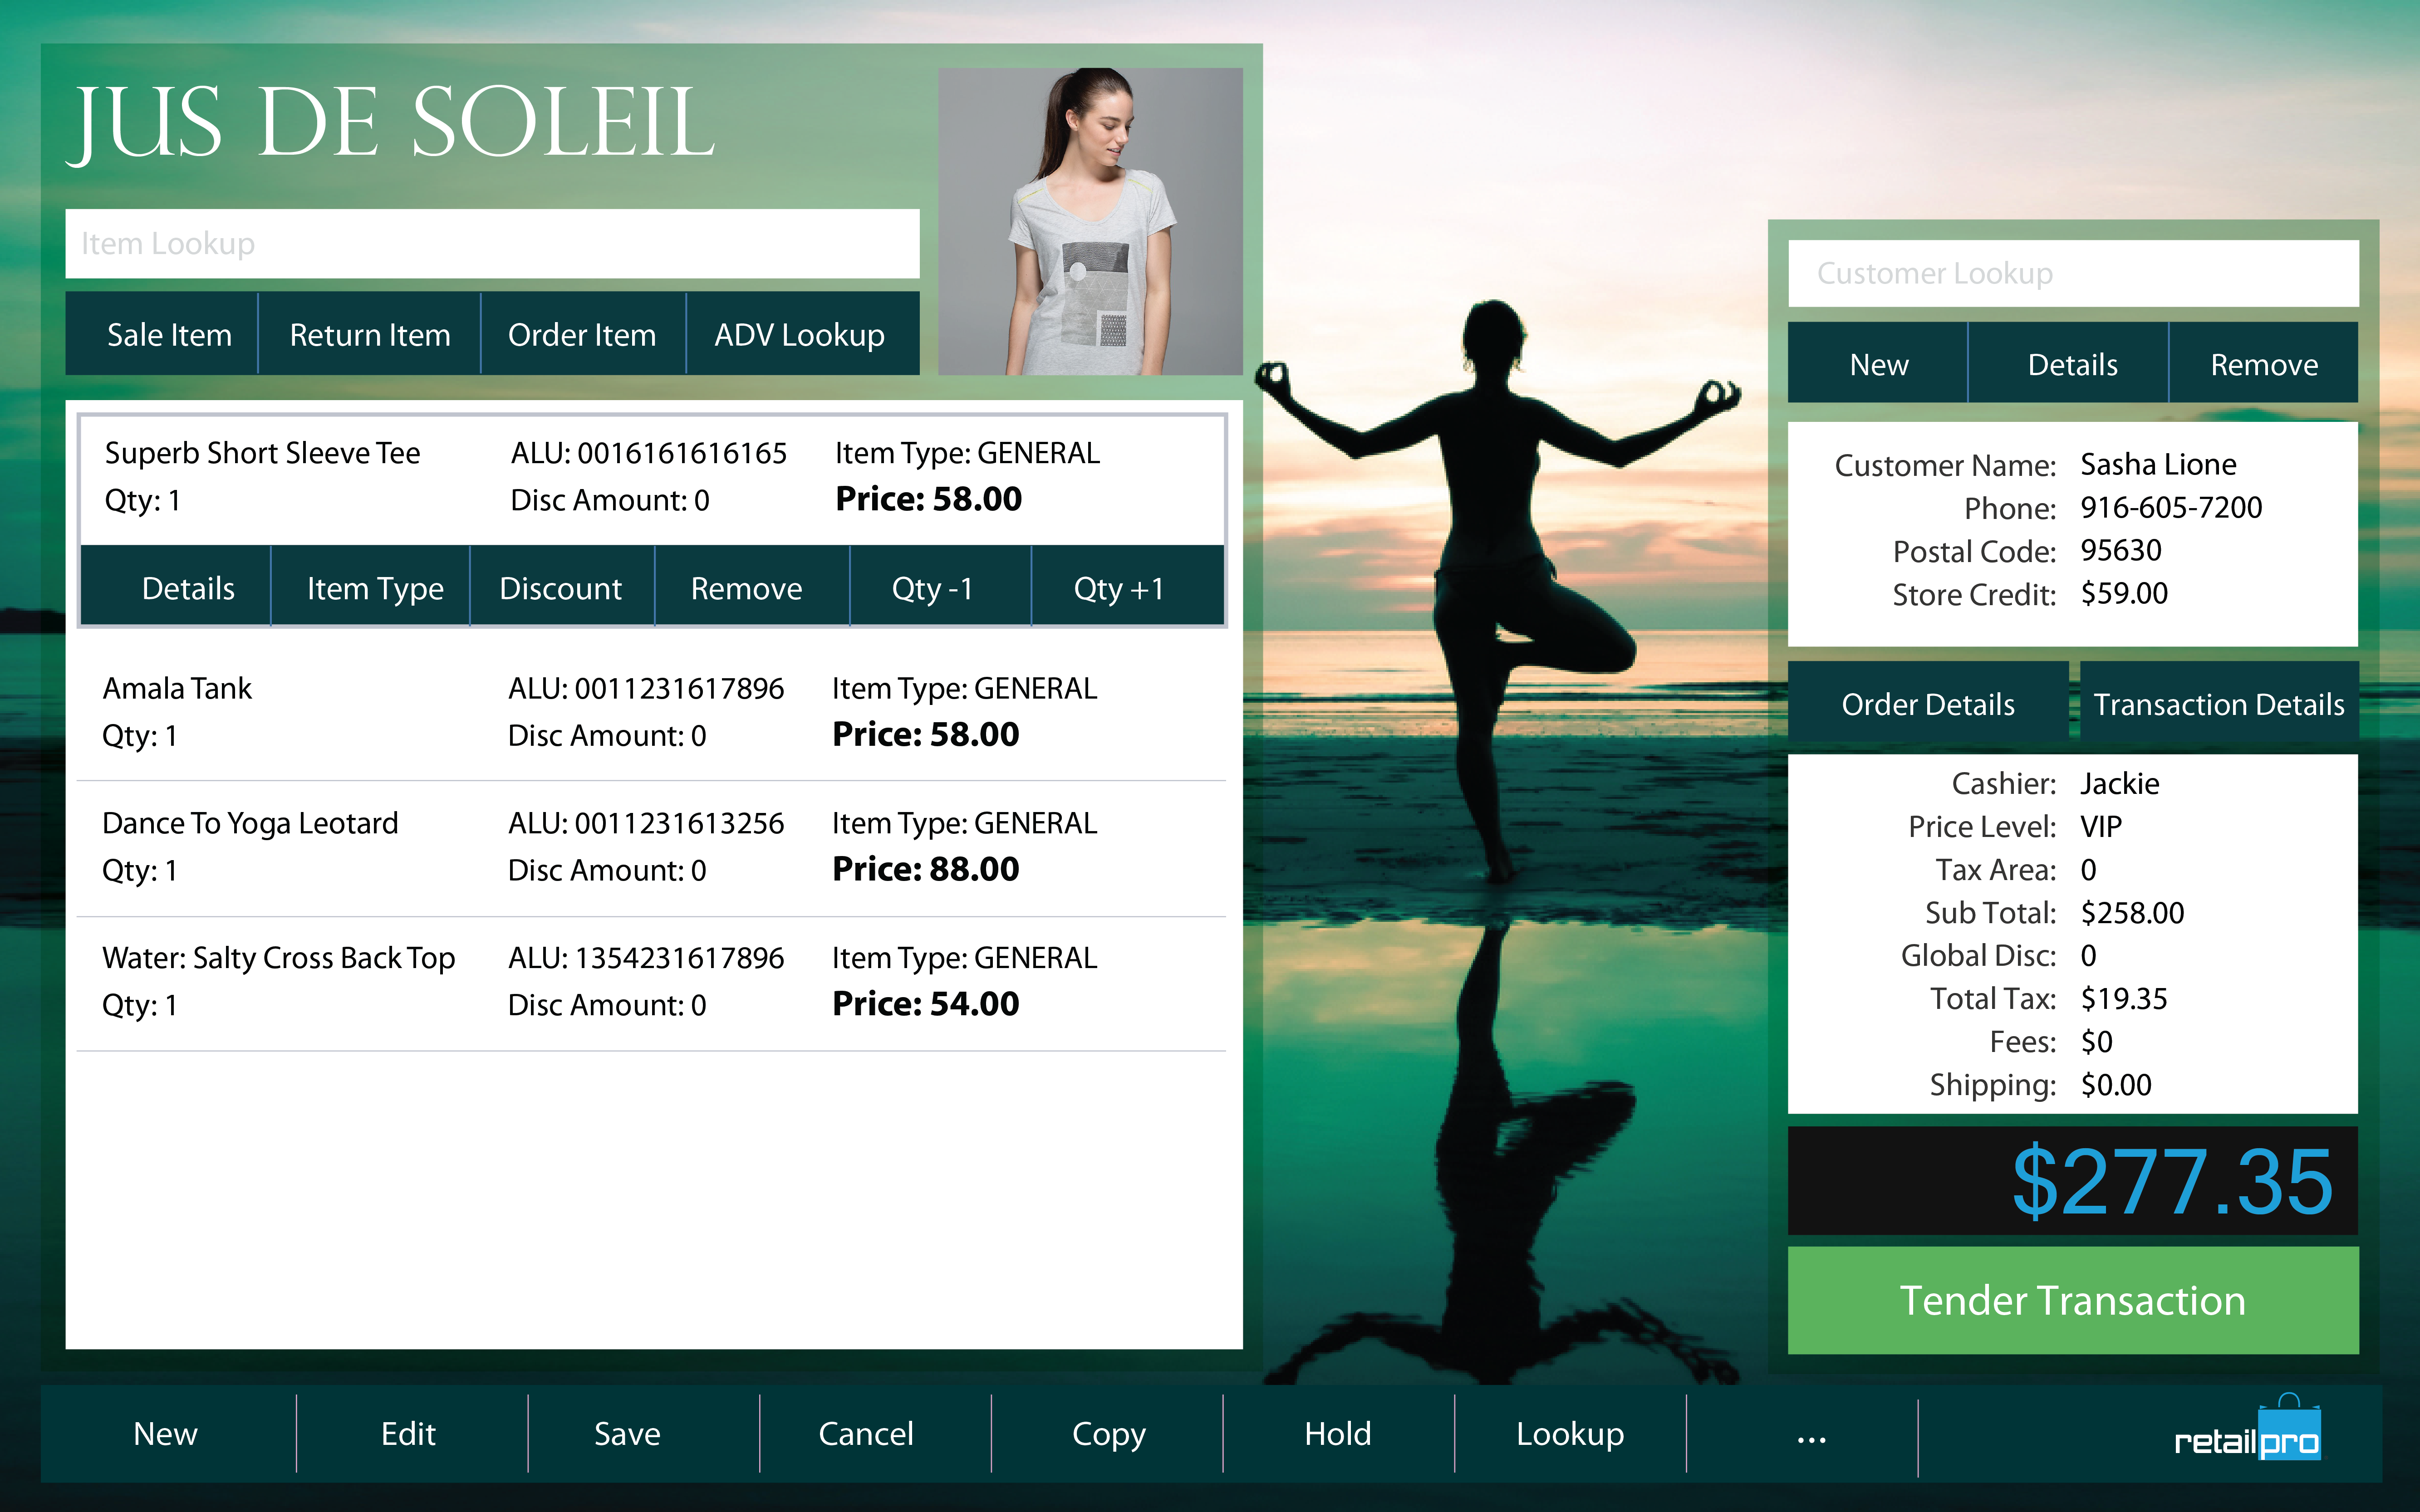 Retail Pro Software - Website and POS branding capabilities